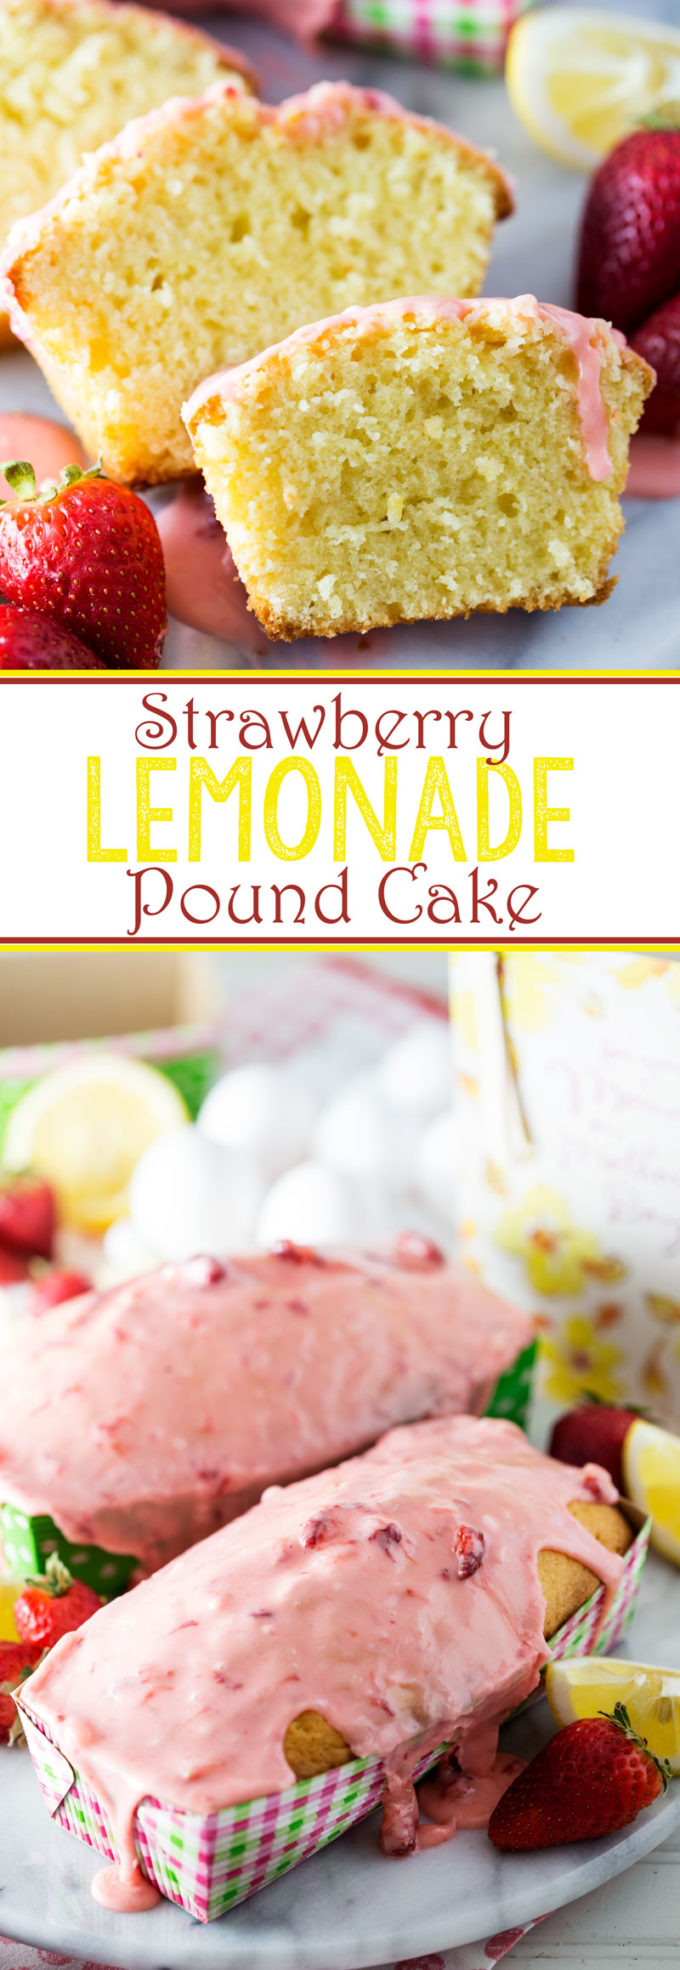 Sweet and lemon-y with a strawberry glaze, this Strawberry Lemonade Pound Cake makes for the perfect treat, and is ideal for gifting too